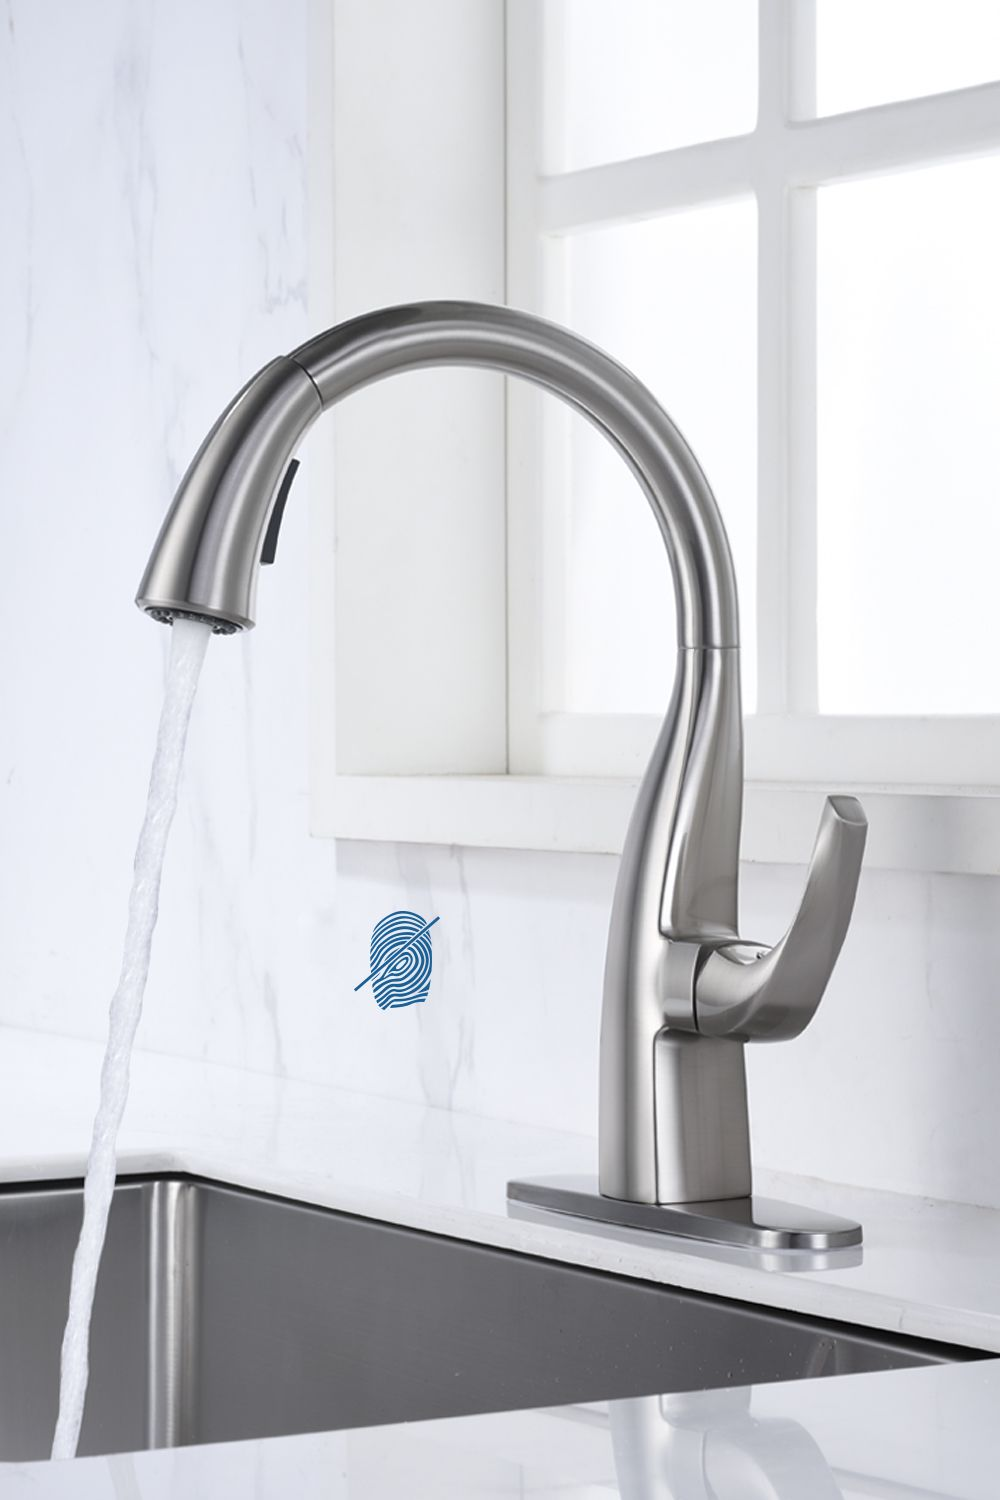 Cheap Kitchen Faucet Brushed Nickel Pull Down Sprayer Head In 2020